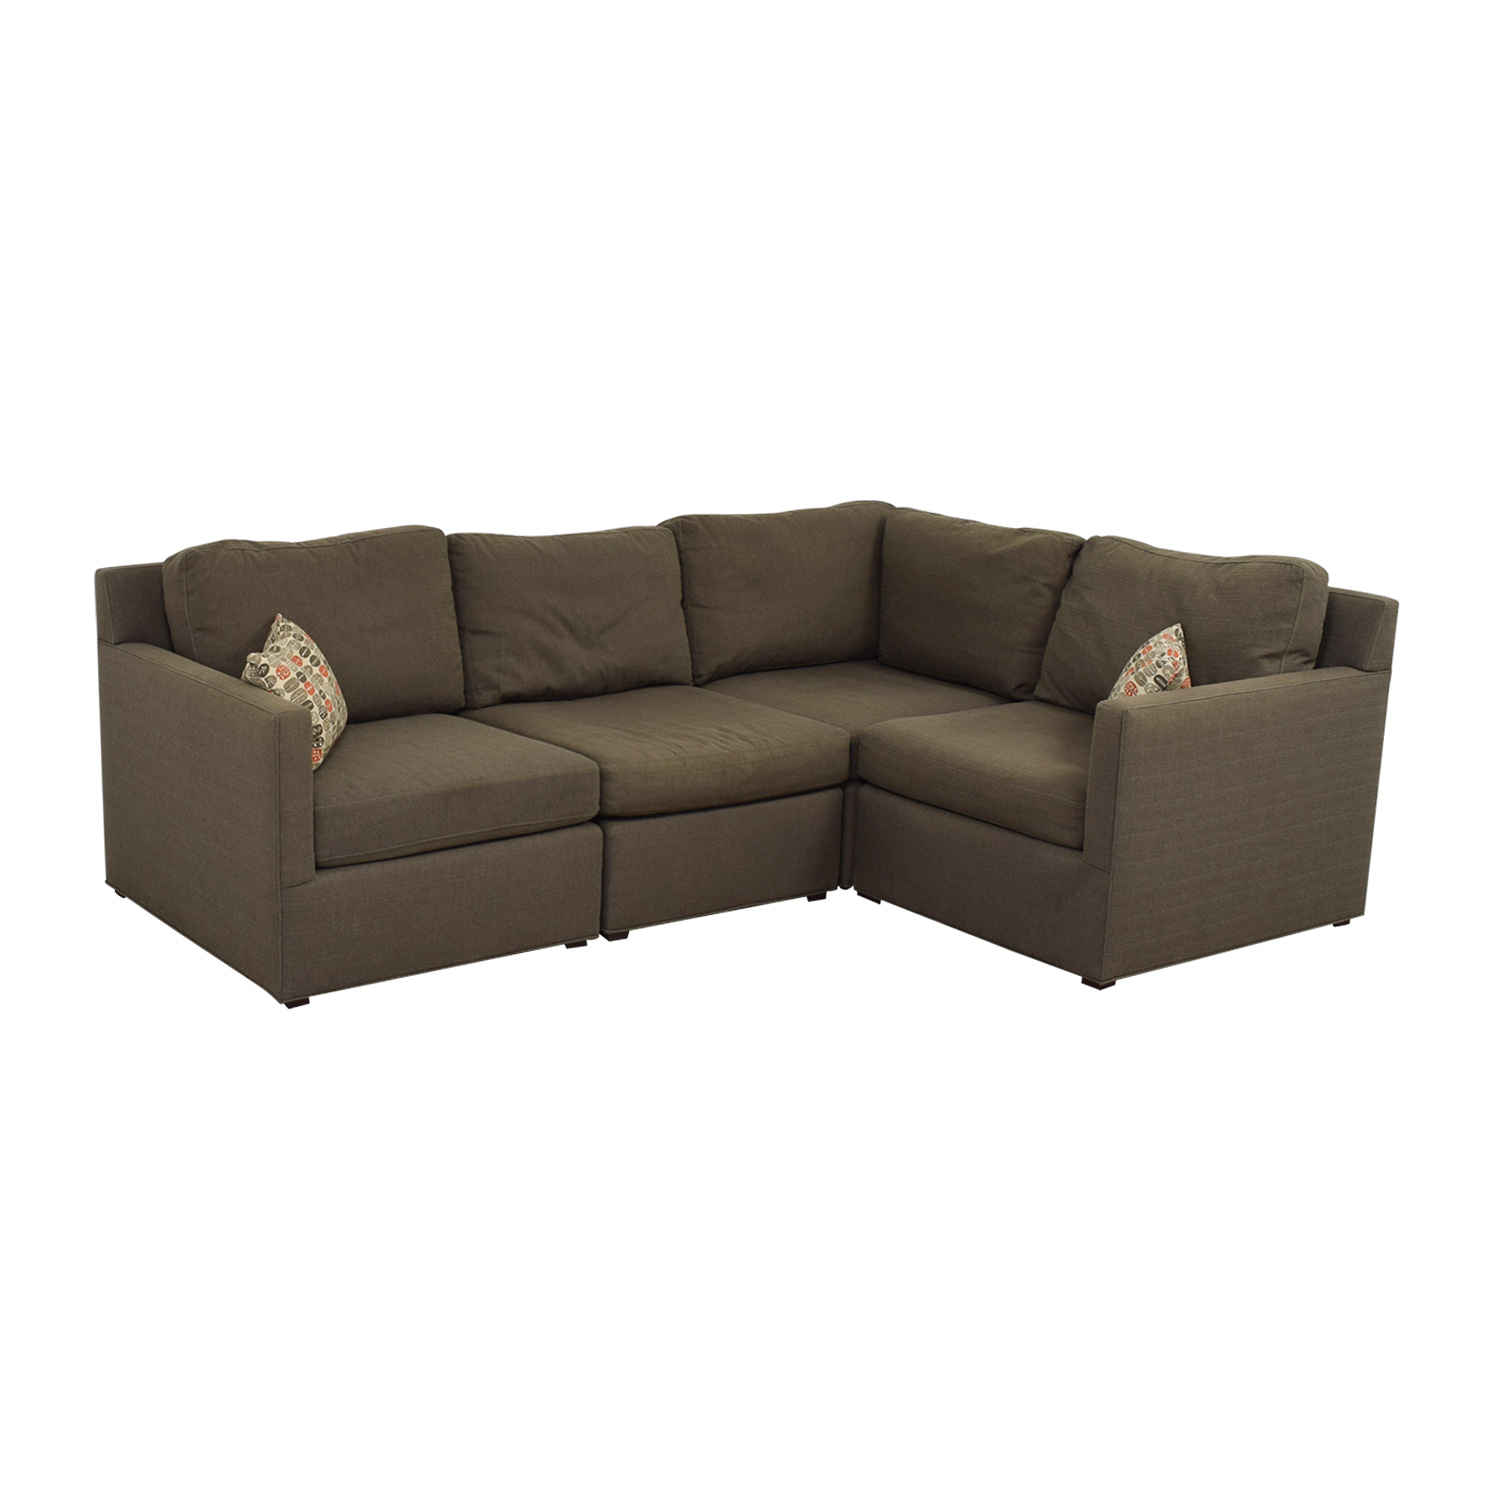 crate and barrel shelter sofa dimensions 2 piece leather 77 off grey l shaped